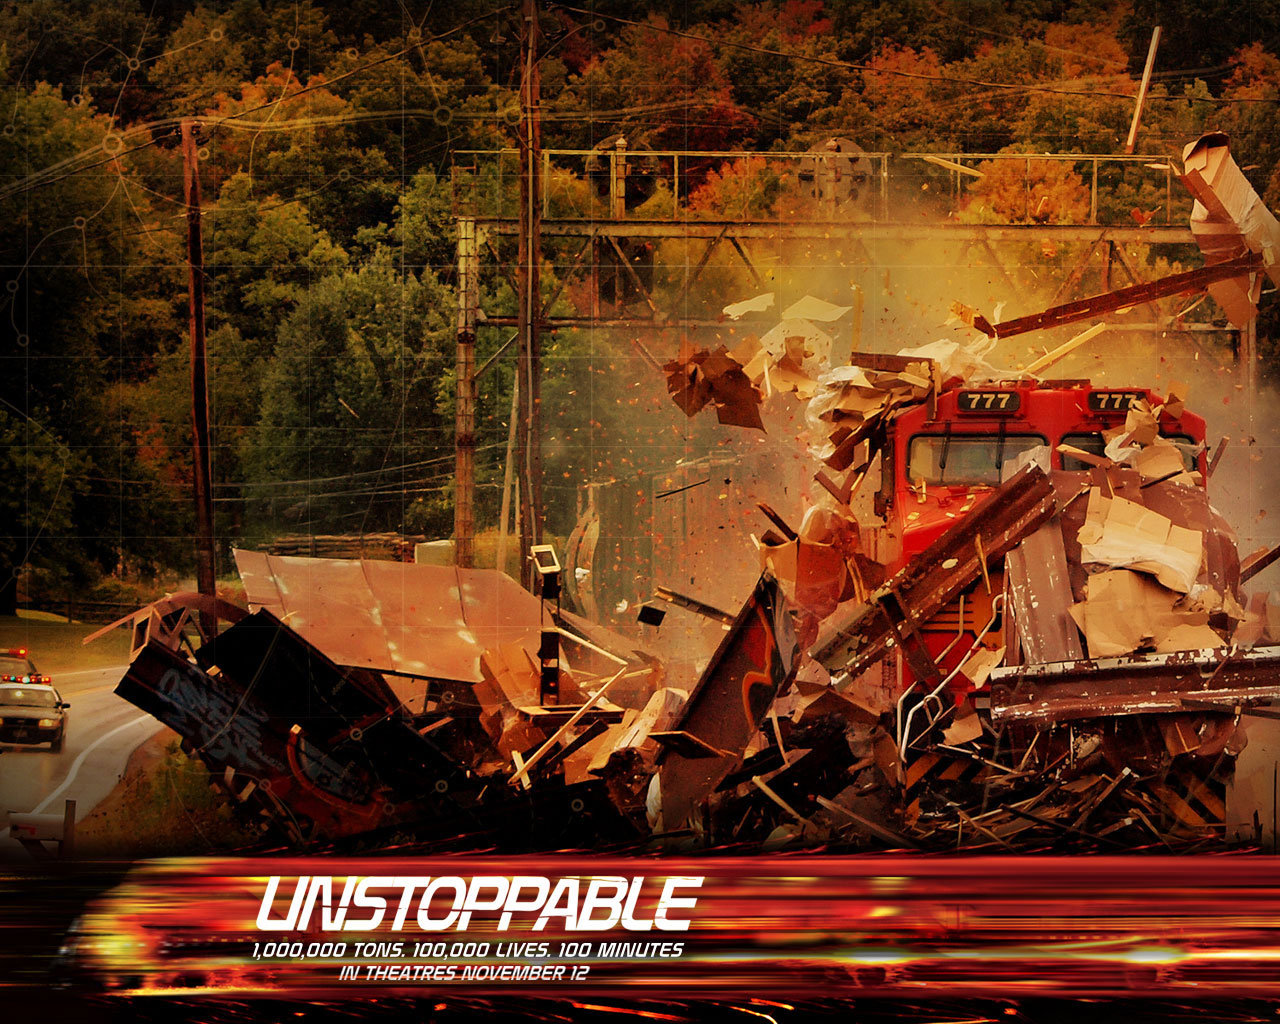 Unstoppable images Unstoppable HD wallpaper and background photos 1280x1024